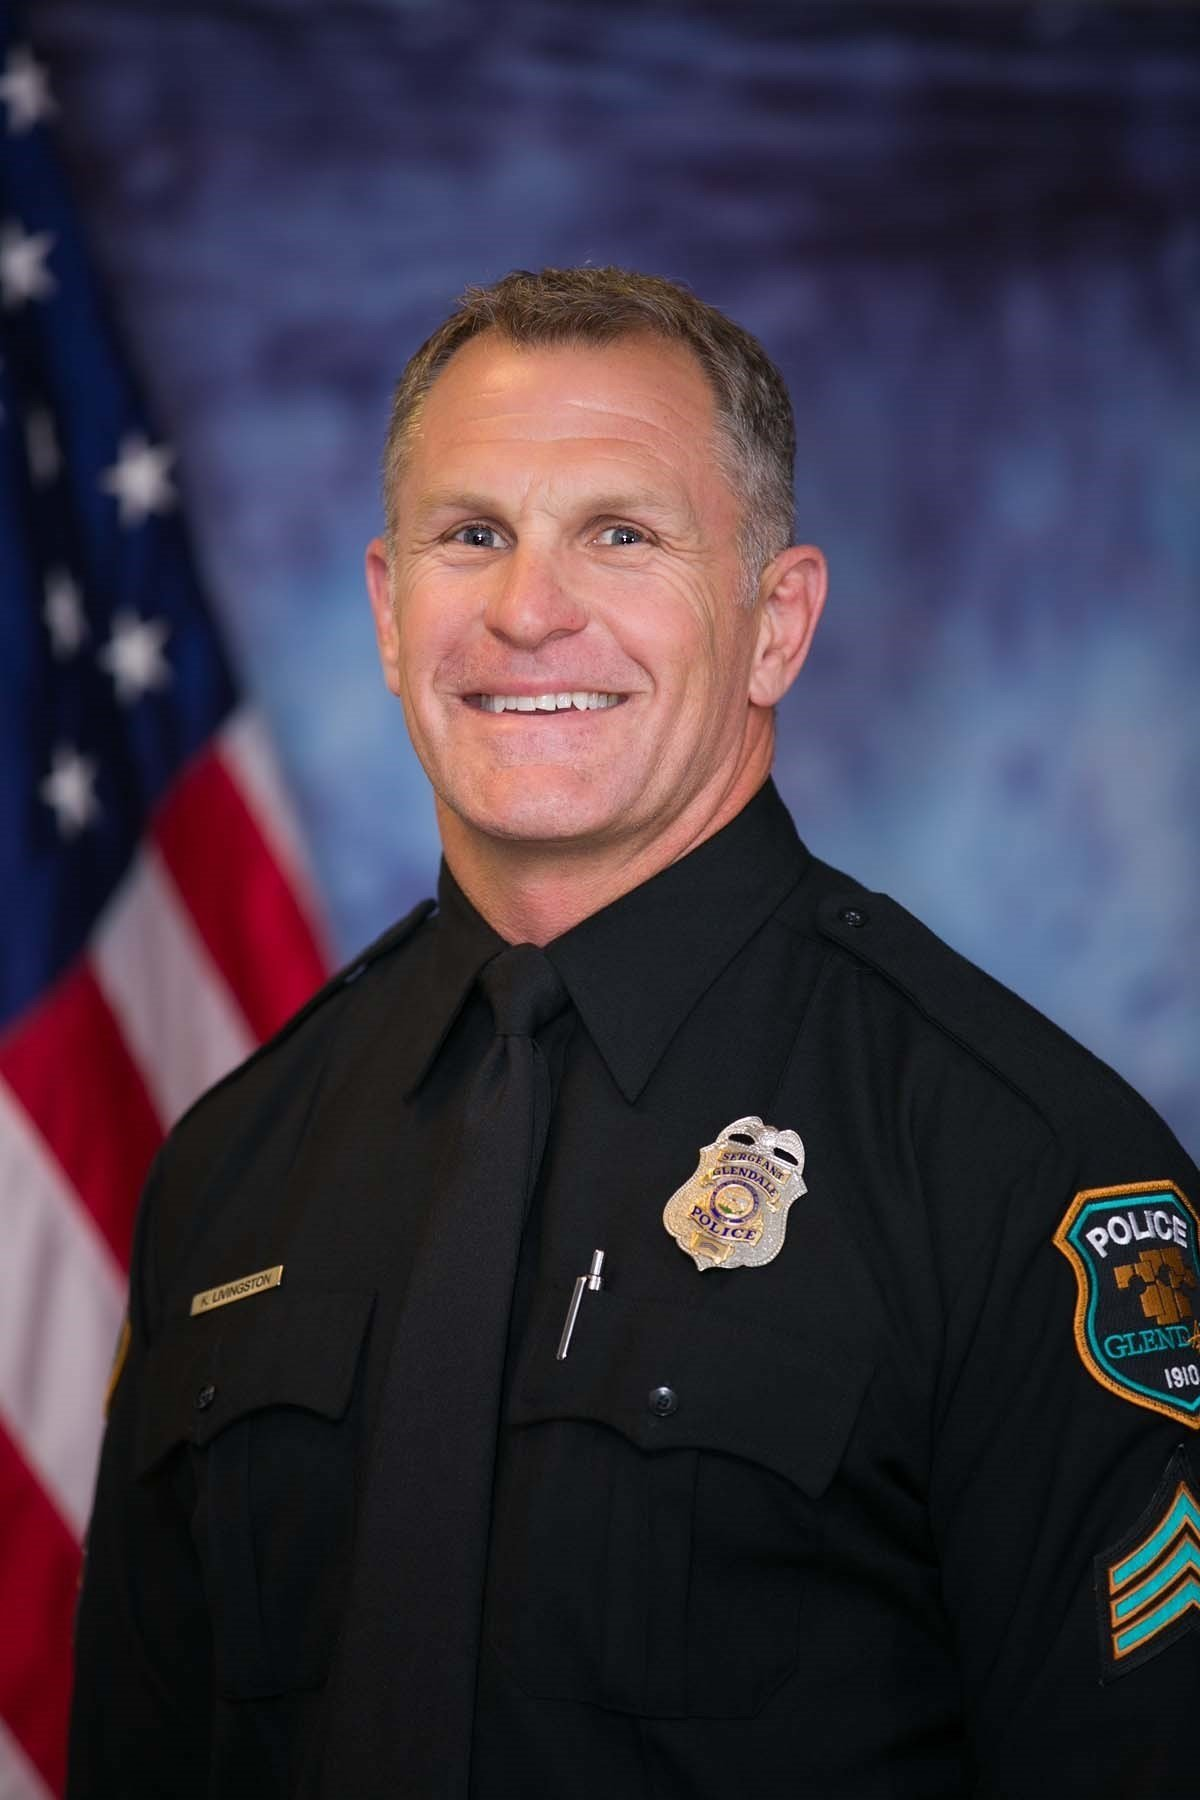 Glendale police identified the officer shot as Robert Livingston, a 23-year veteran with the department (Source: Glendale Police Department)